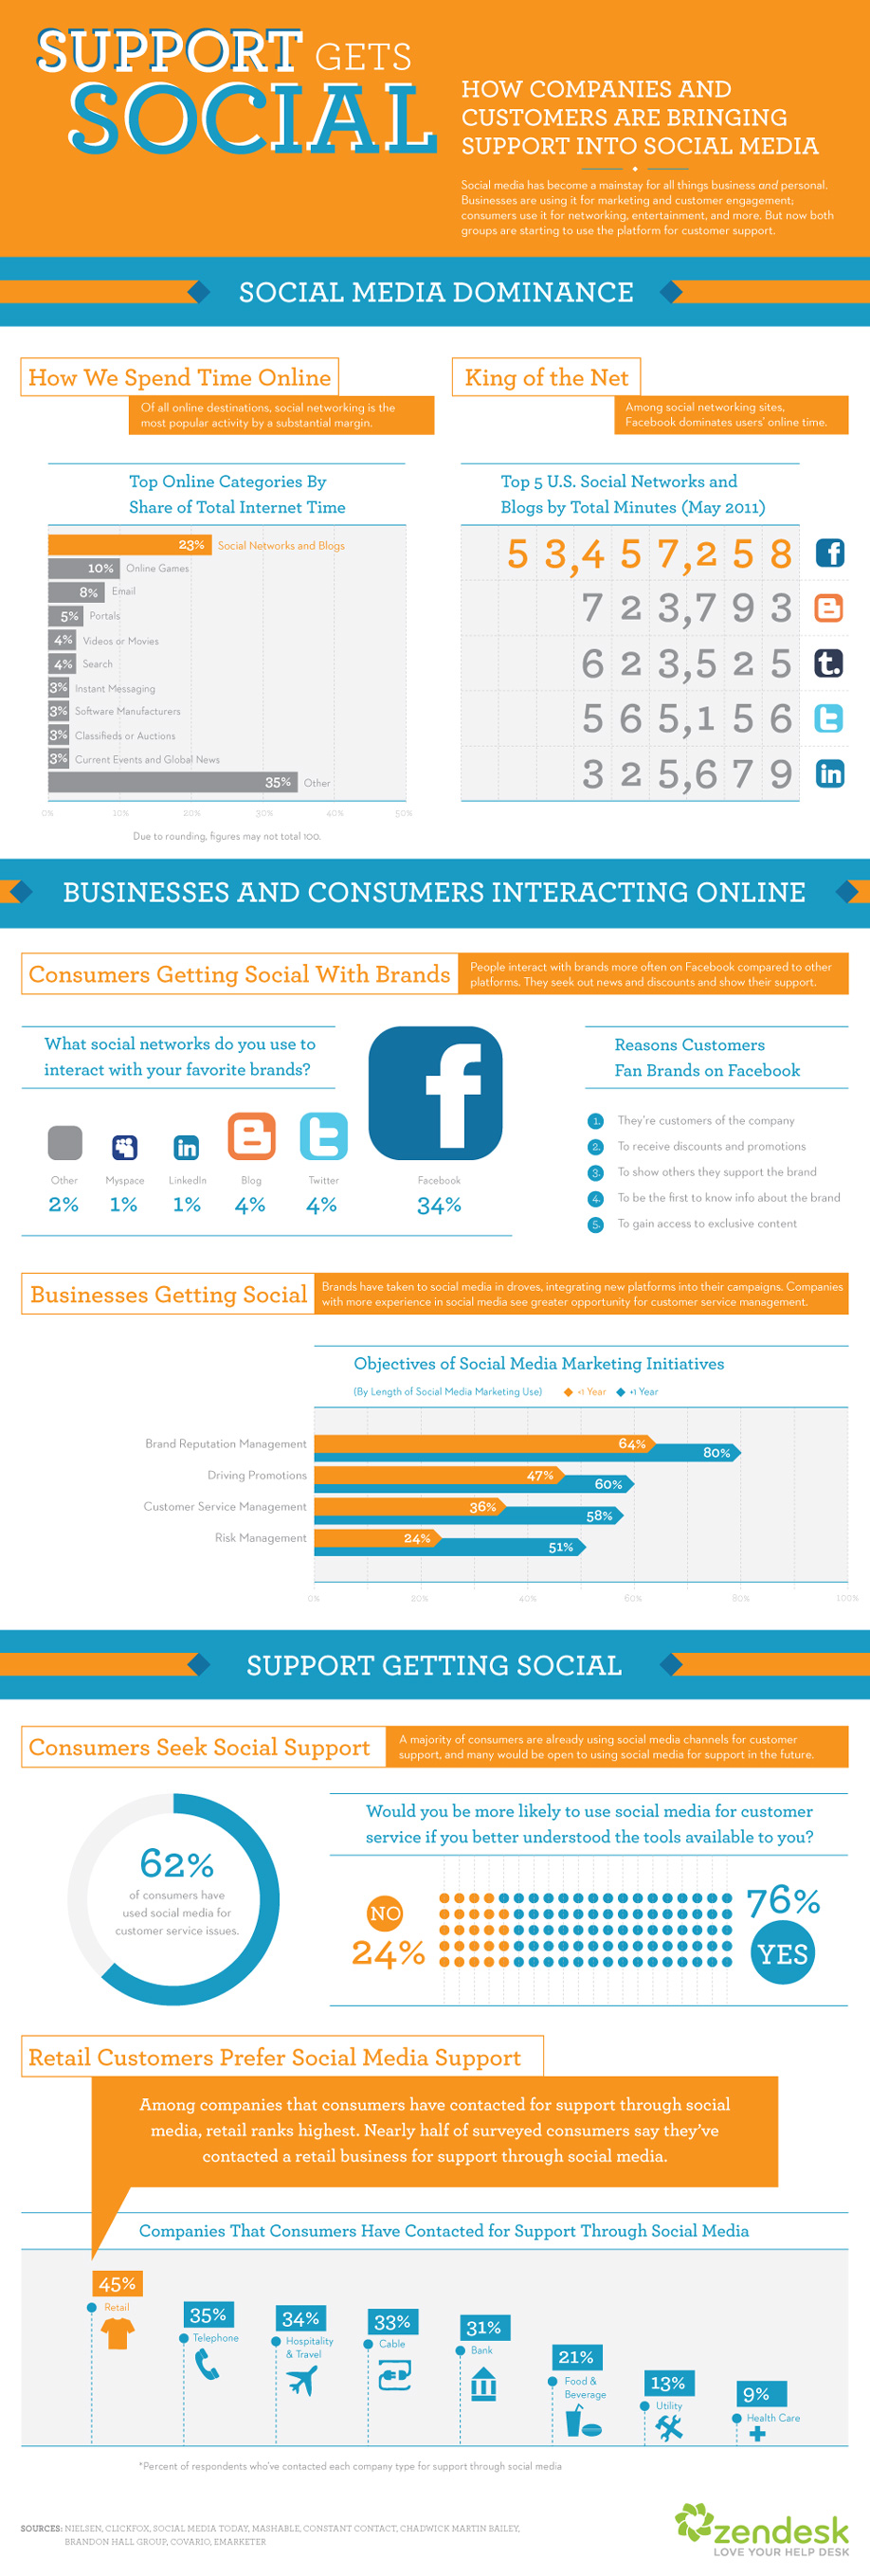 Social Media and the Future of Customer Support